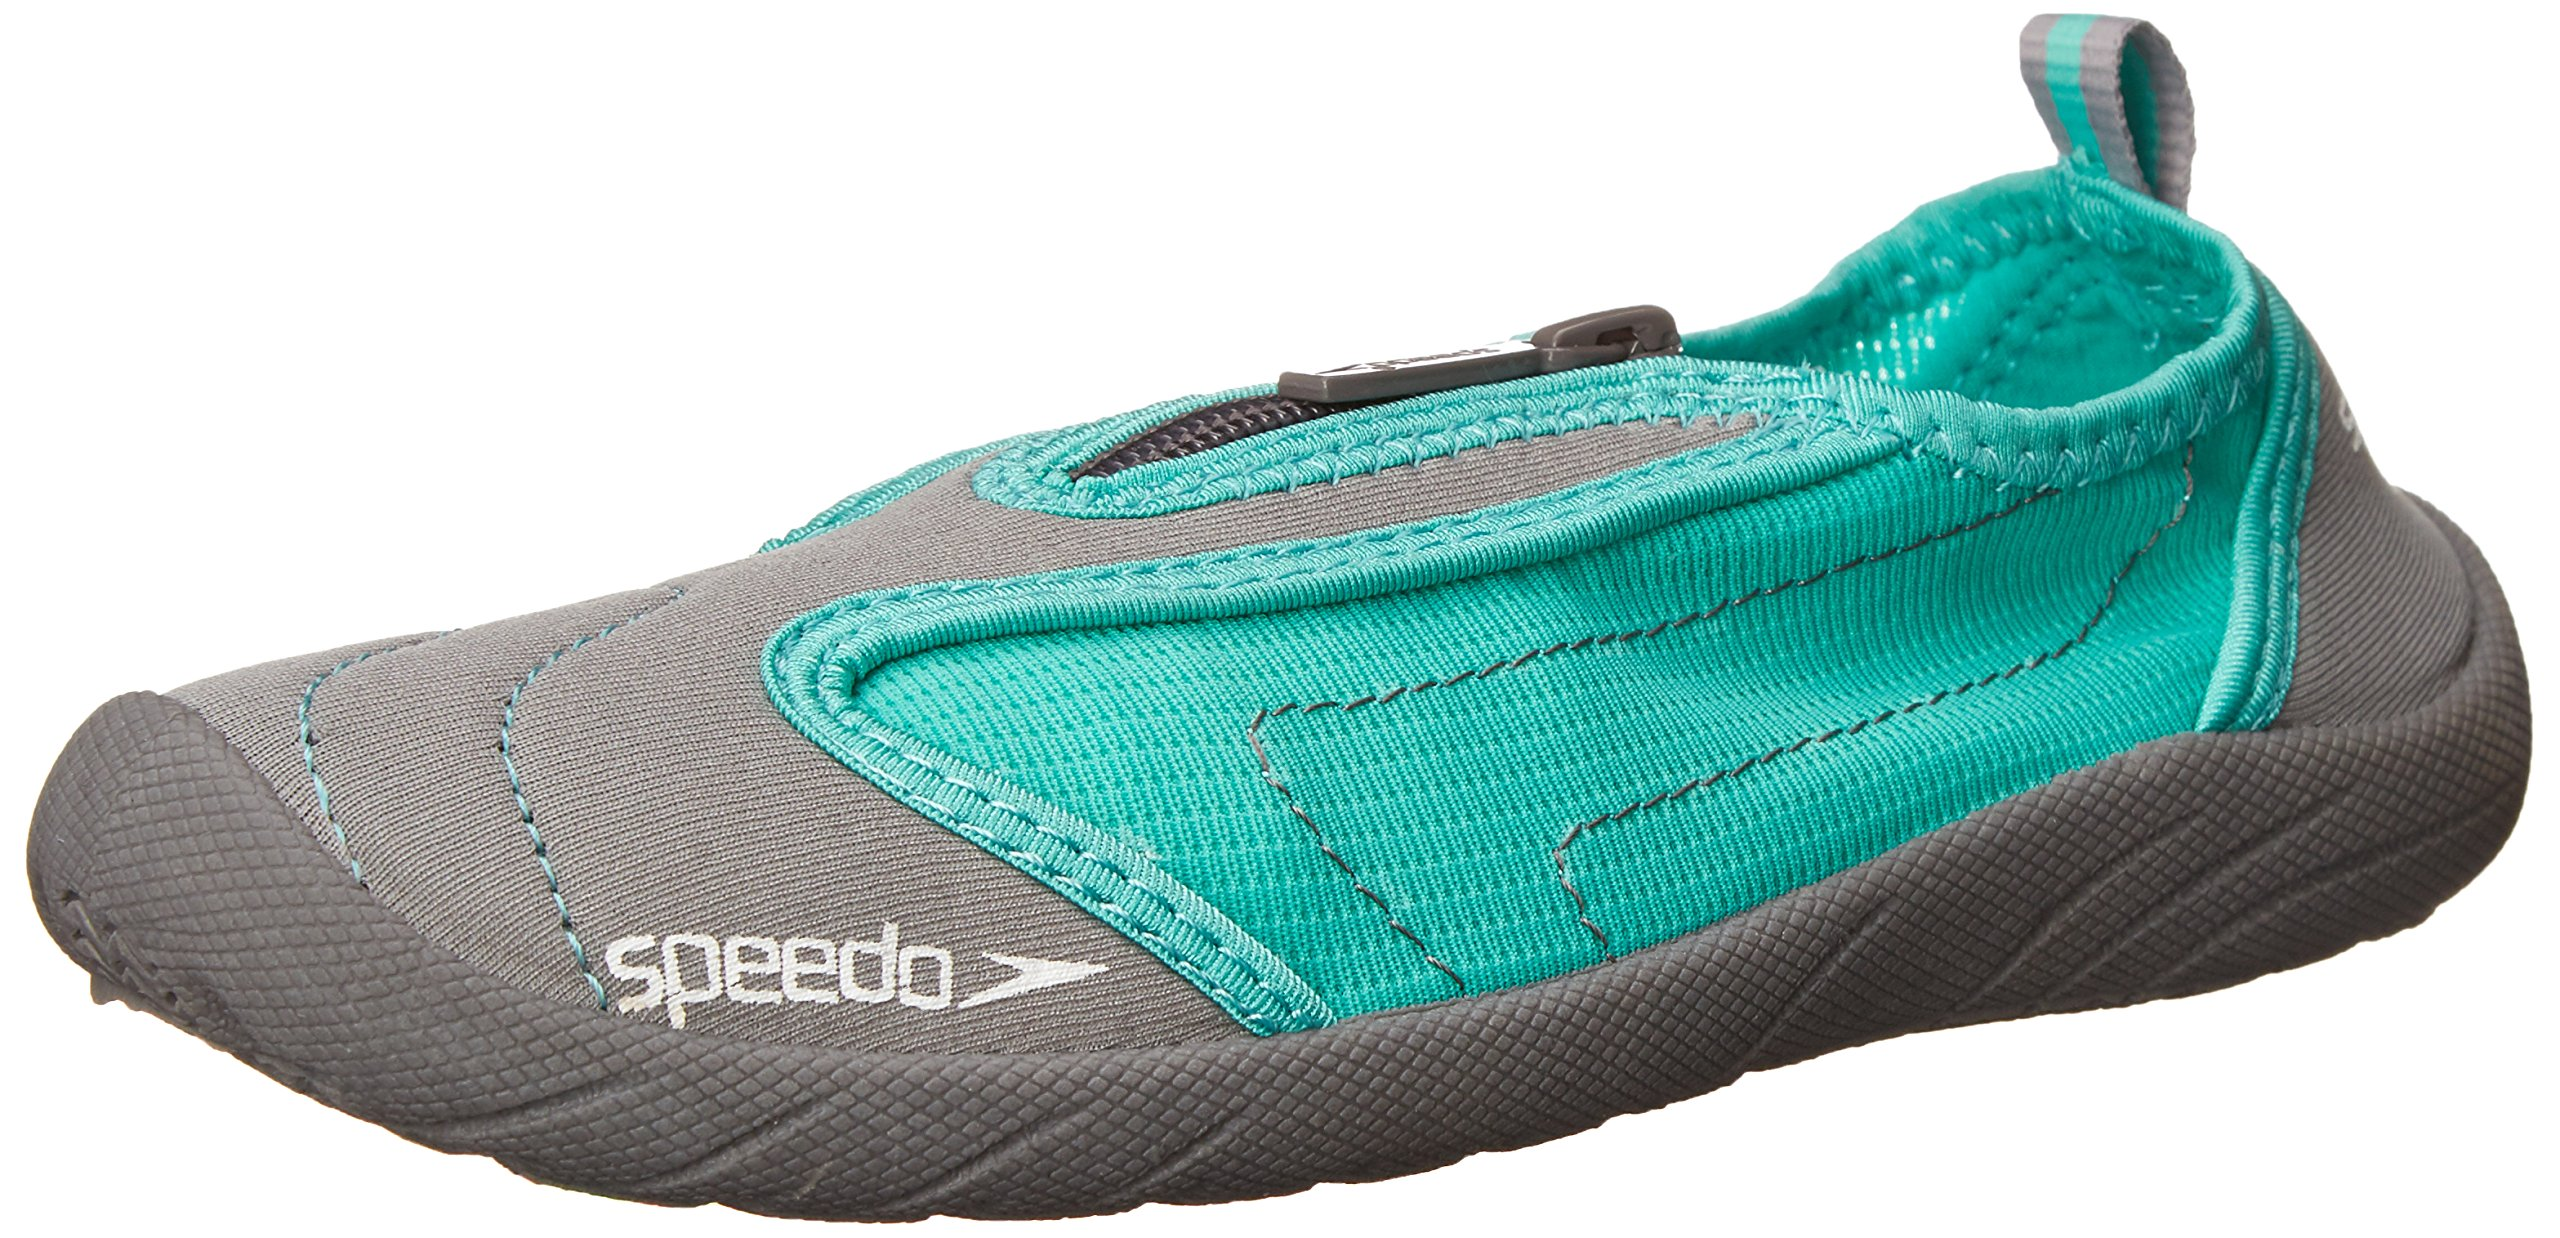 Speedo Women's Zipwalker 3.0 Water Shoe